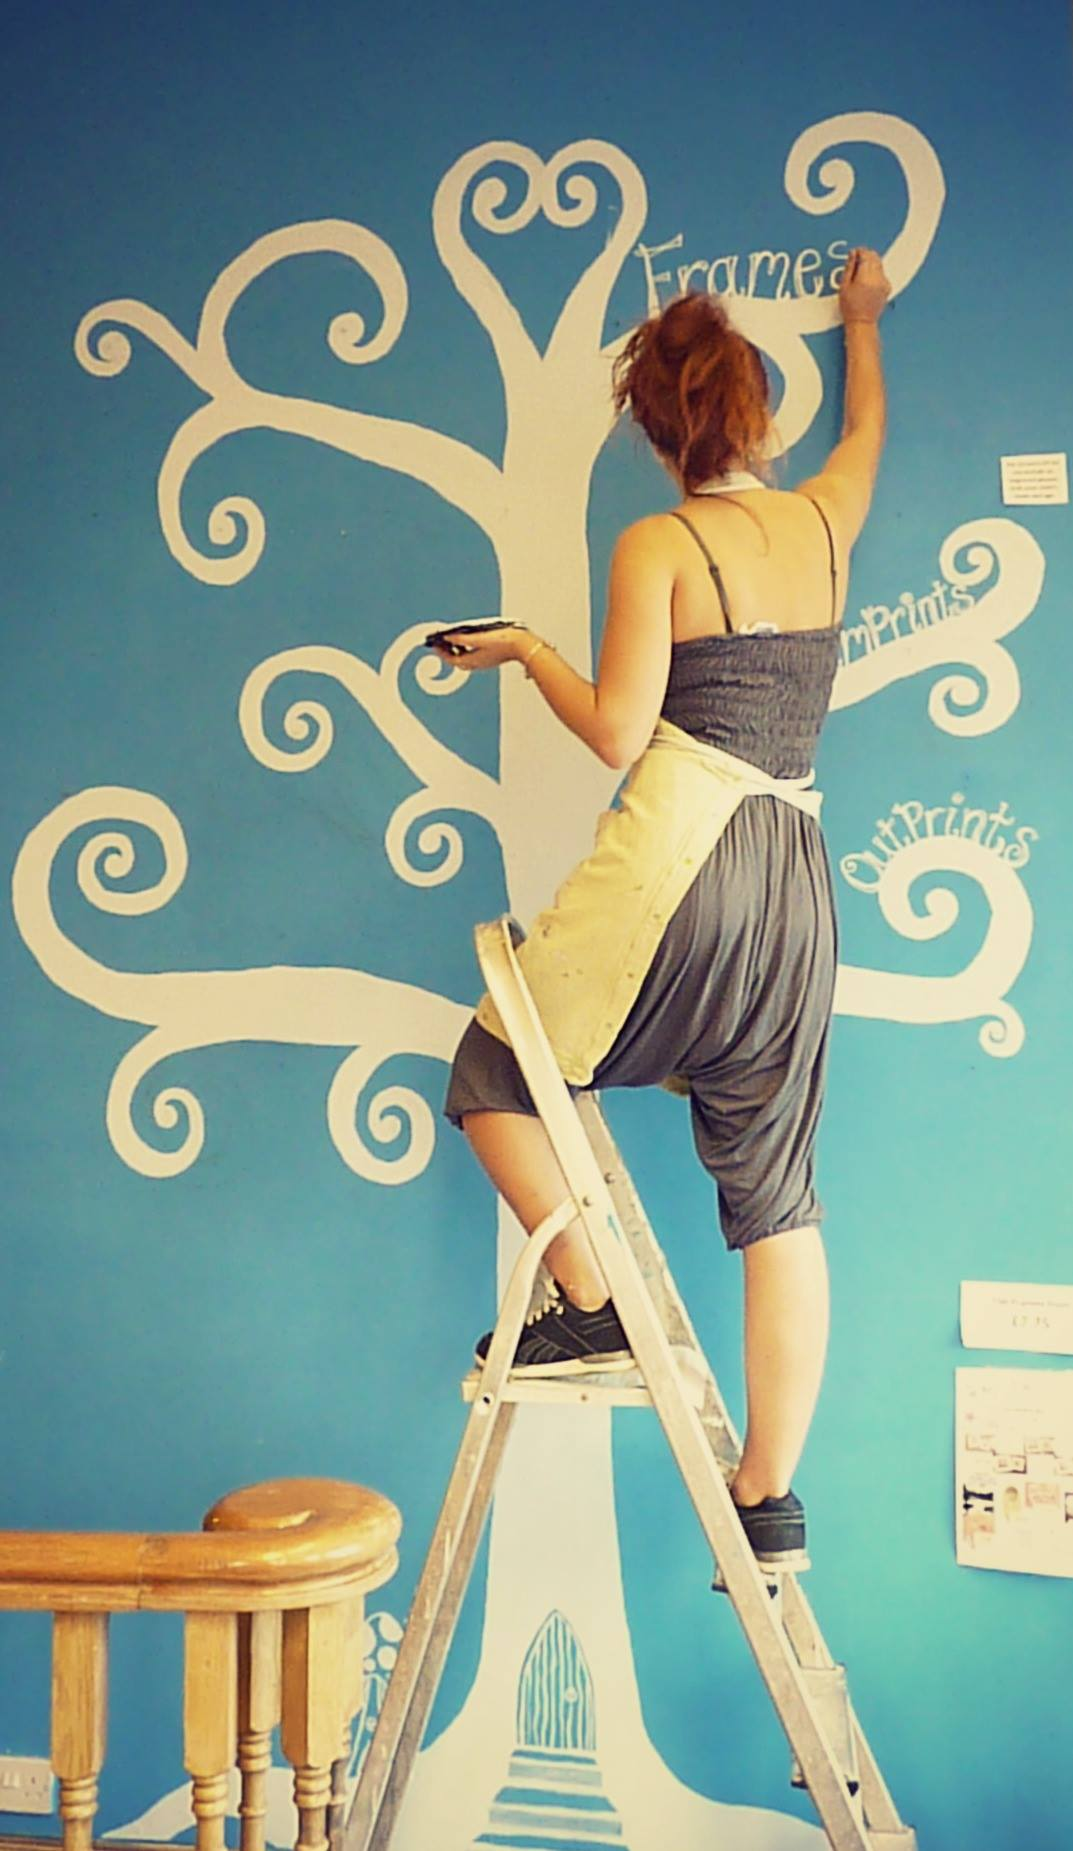 harriet lily artwork wall painting